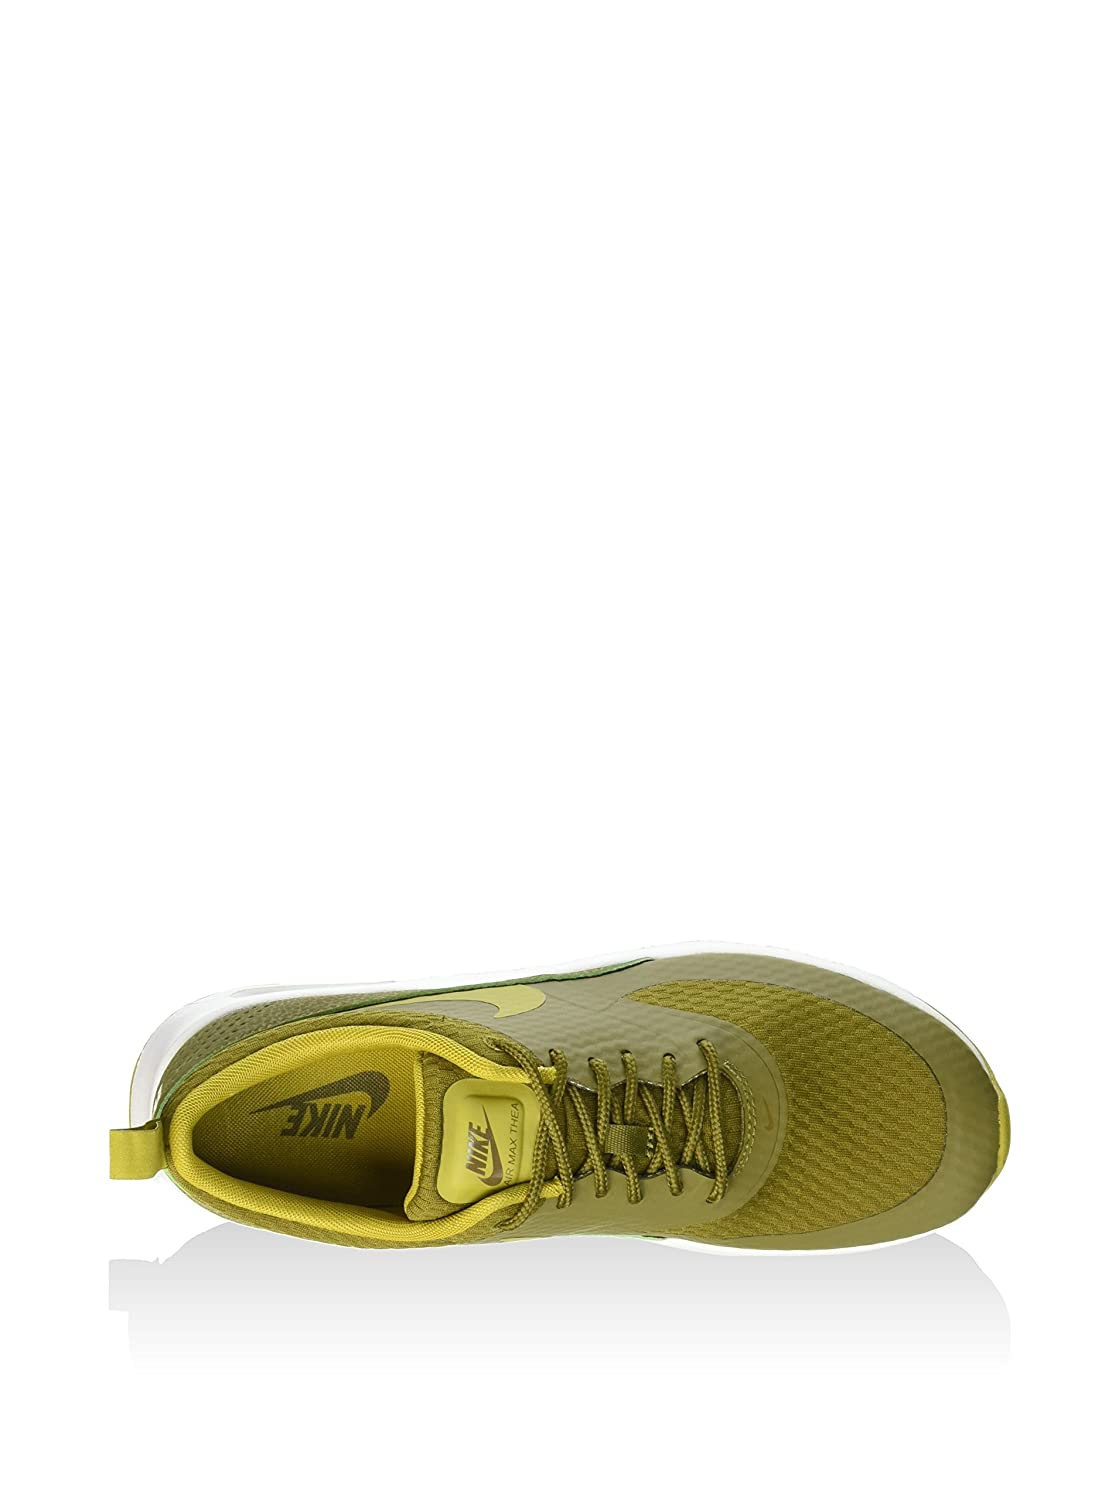 Nike Womens Air Max Thea TXT Olive Synthetic Trainers 6 US